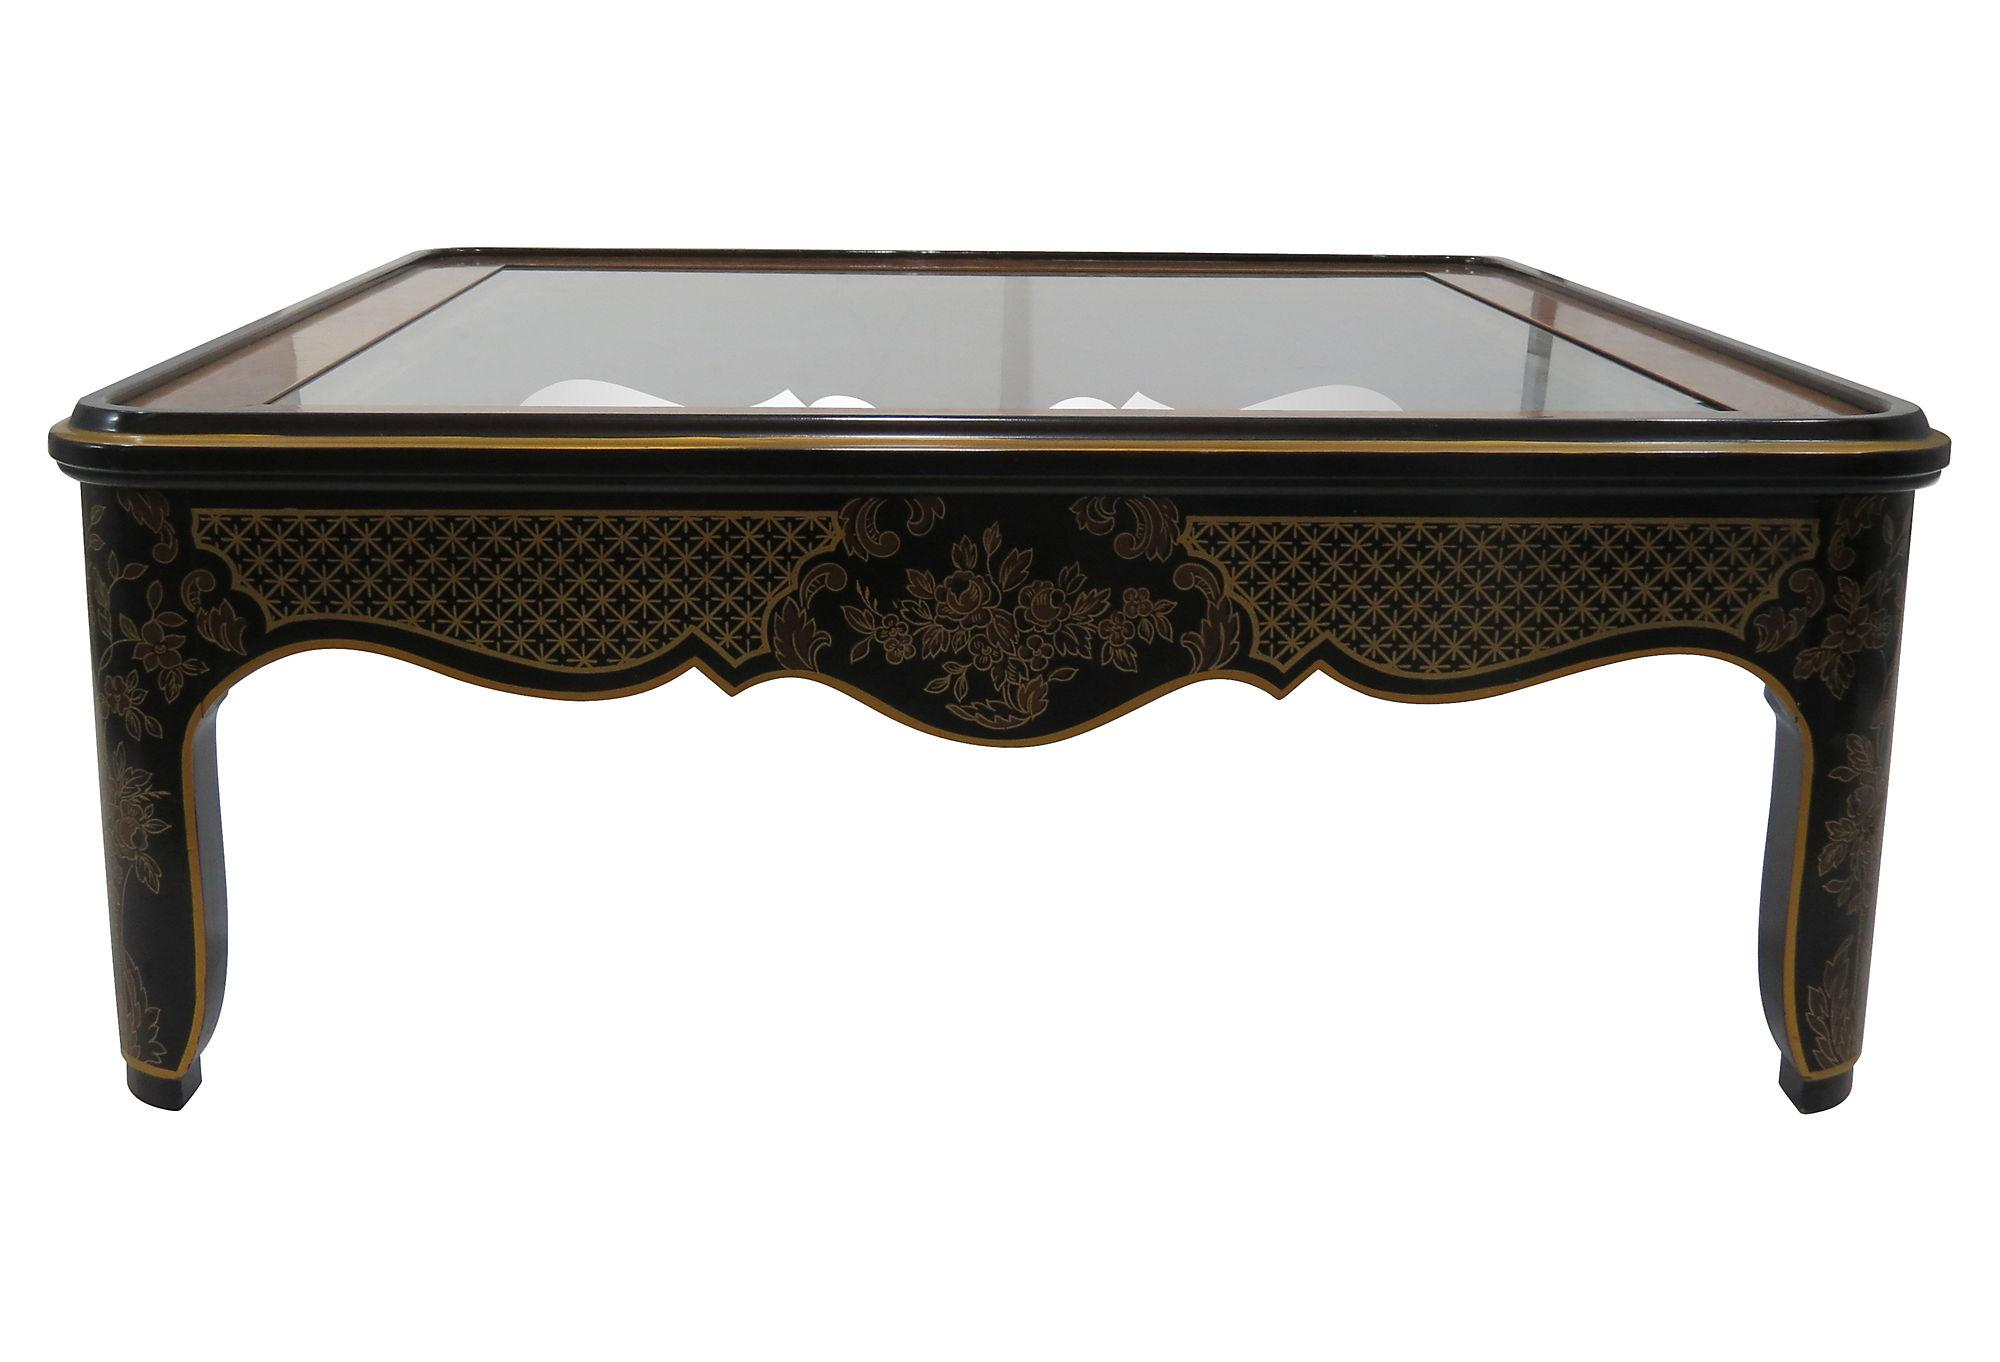 English Style Coffee Table by Drexel Heritage Chairish